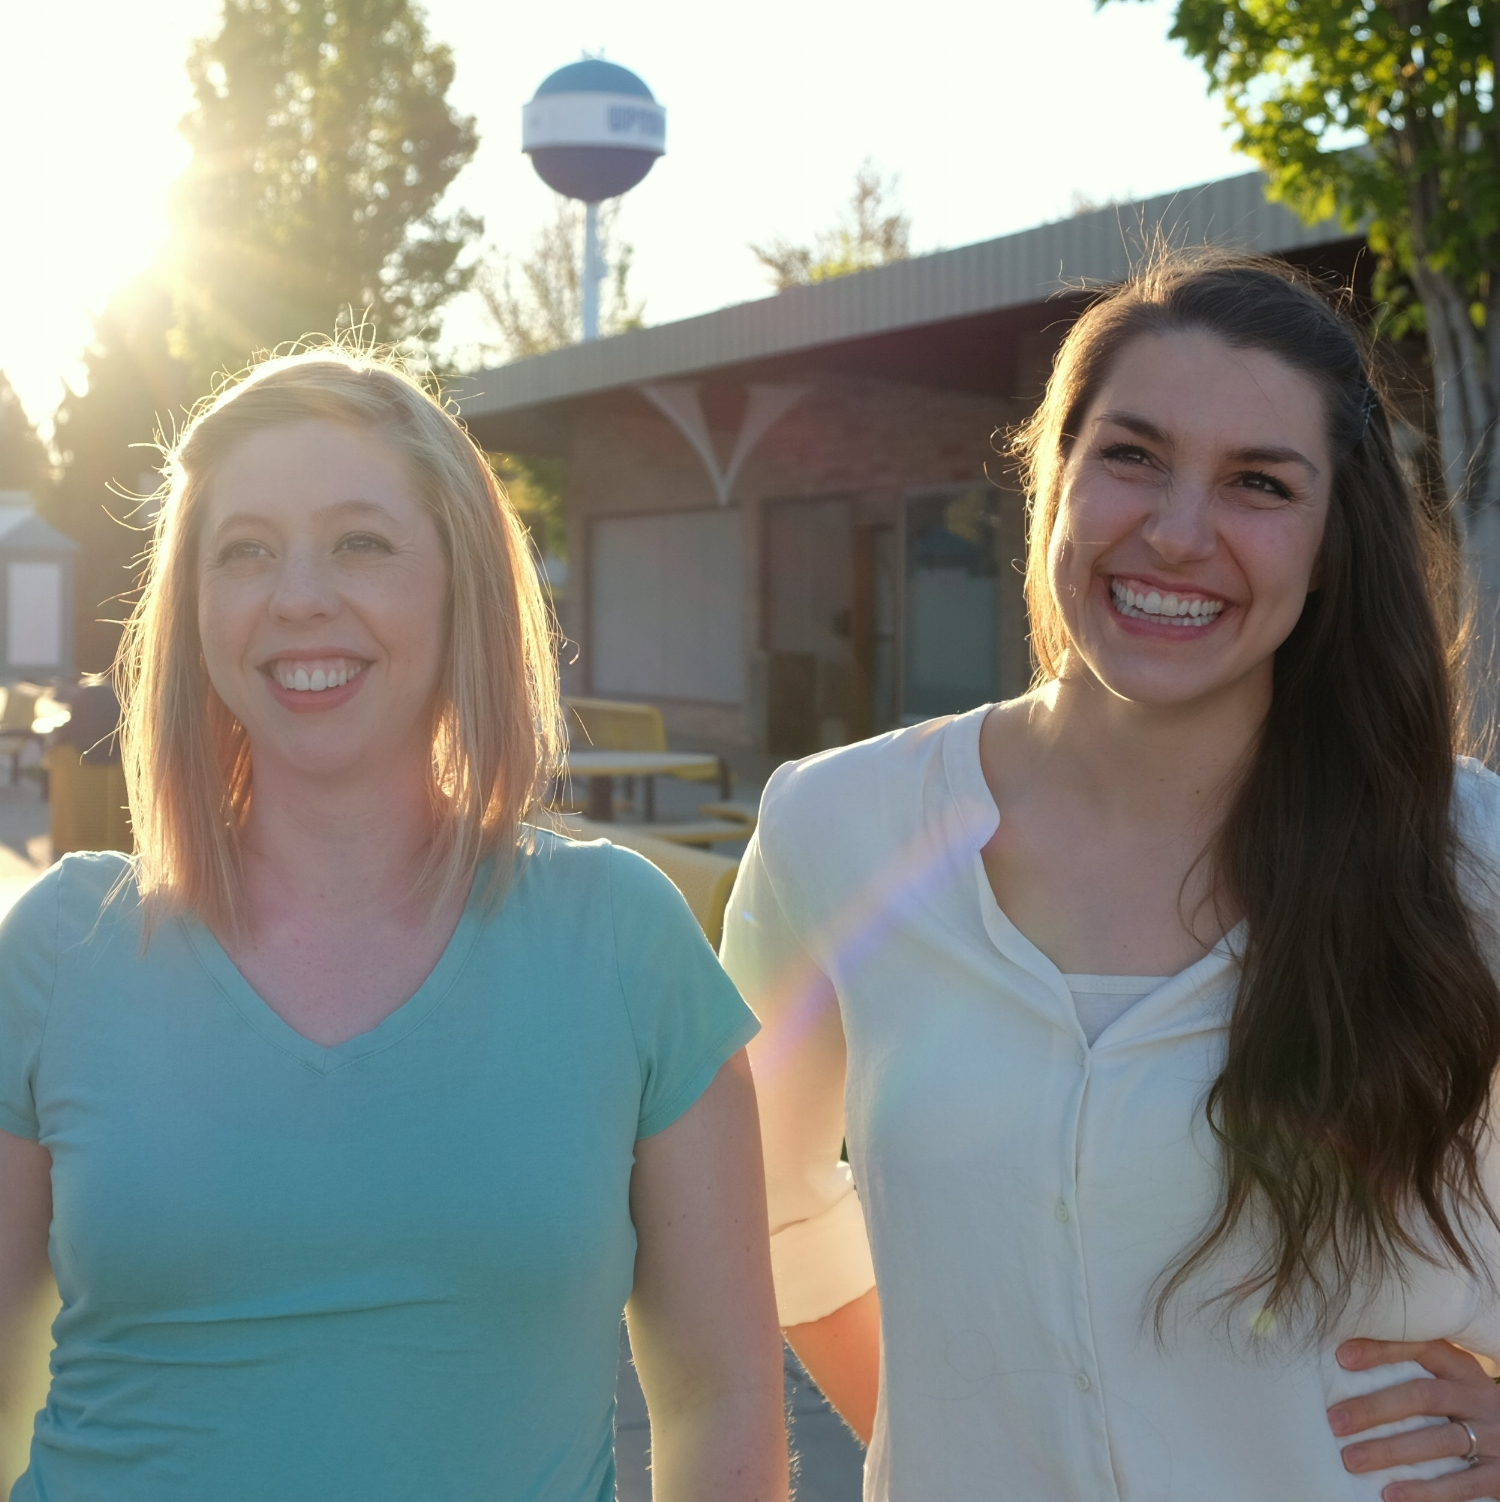 Christine (left) and Shantal (right), co-owners of Thrive Dance.